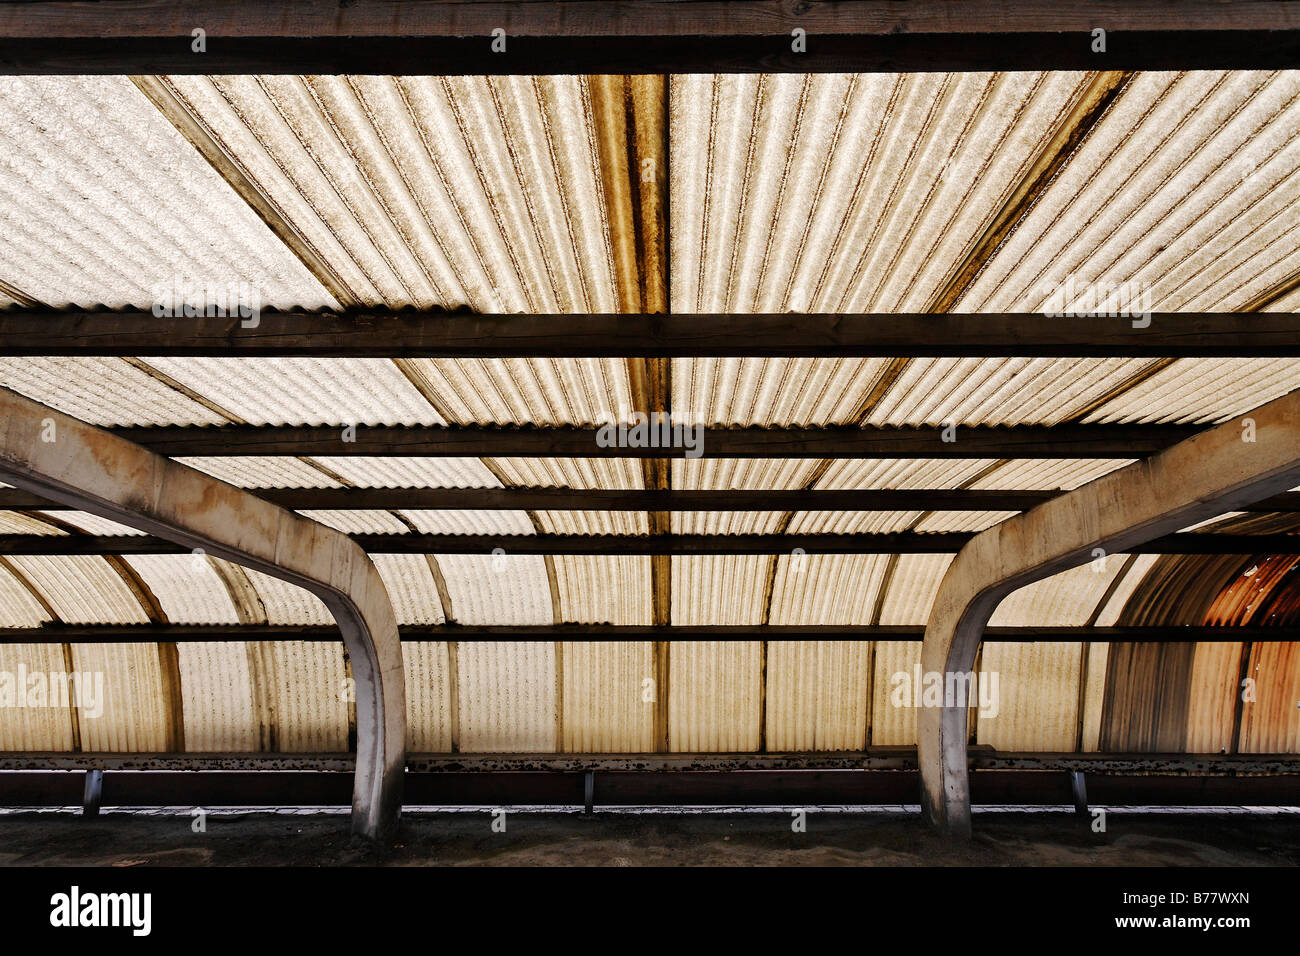 Corrugated roof made of plastic, brown colouring caused by factory fumes, pollution, factory parking place in the - Stock Image